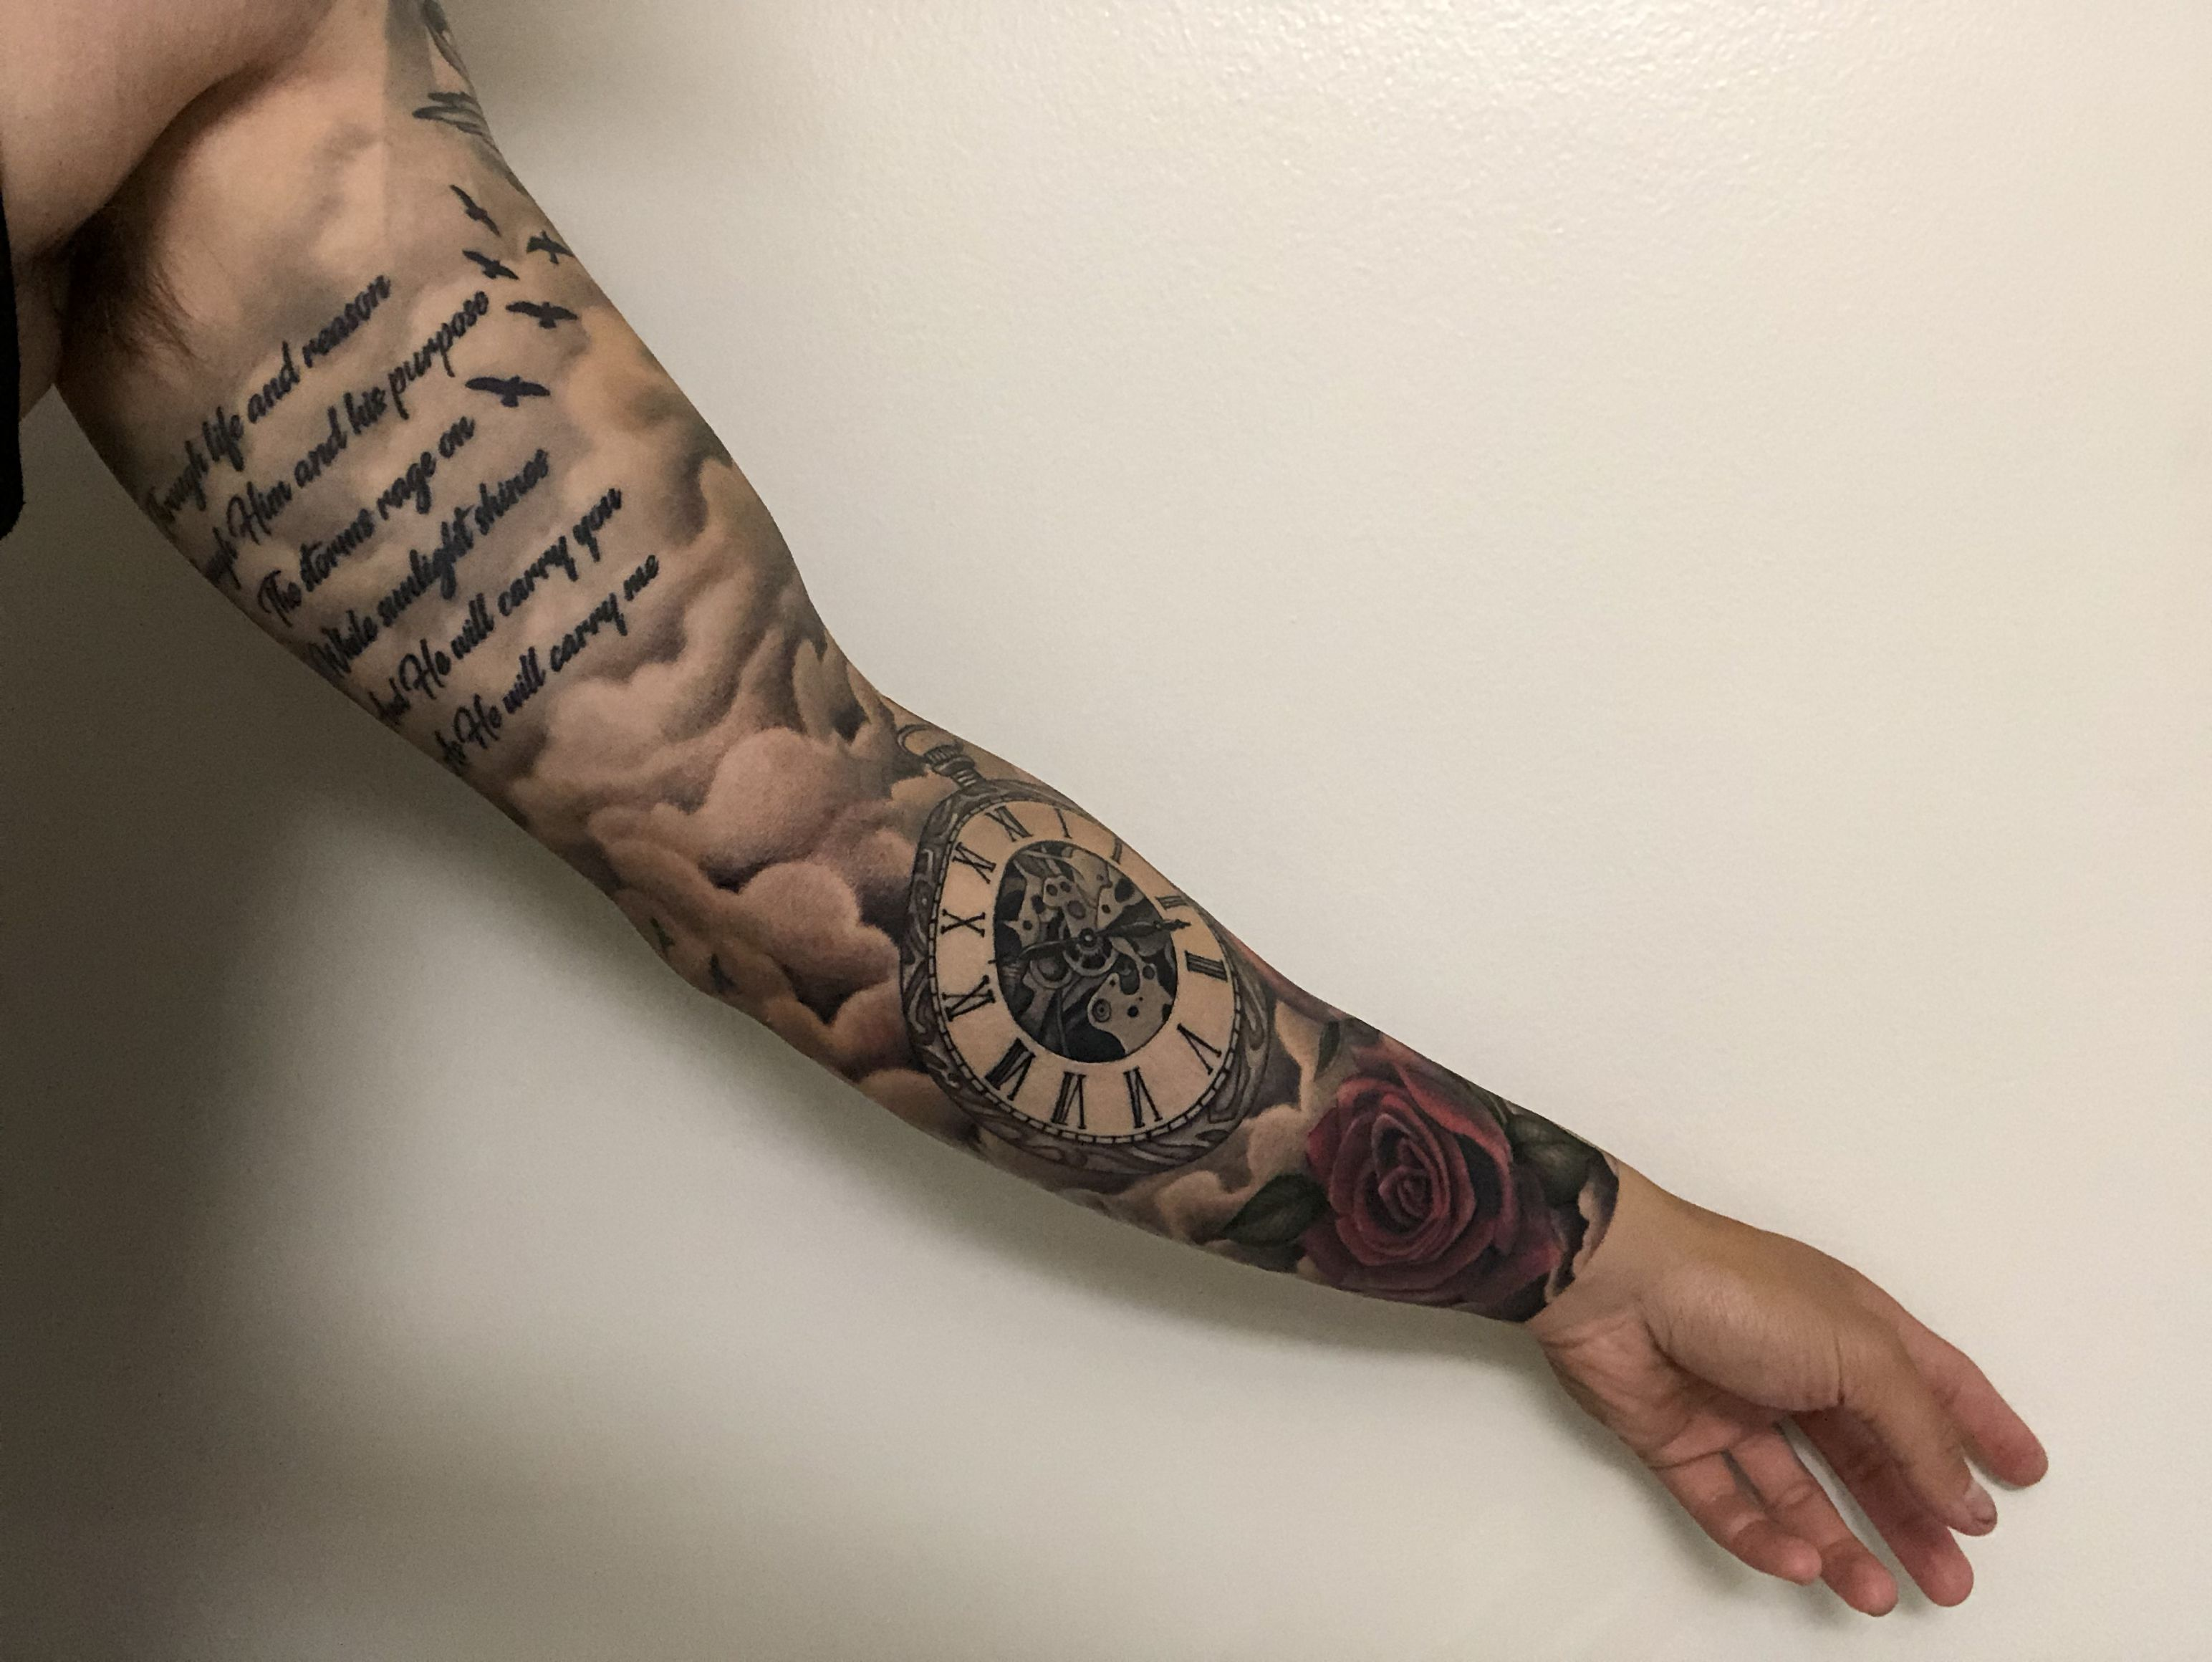 Pin by Seetho on Personal Tattoos   Cool forearm tattoos, Tattoos ...